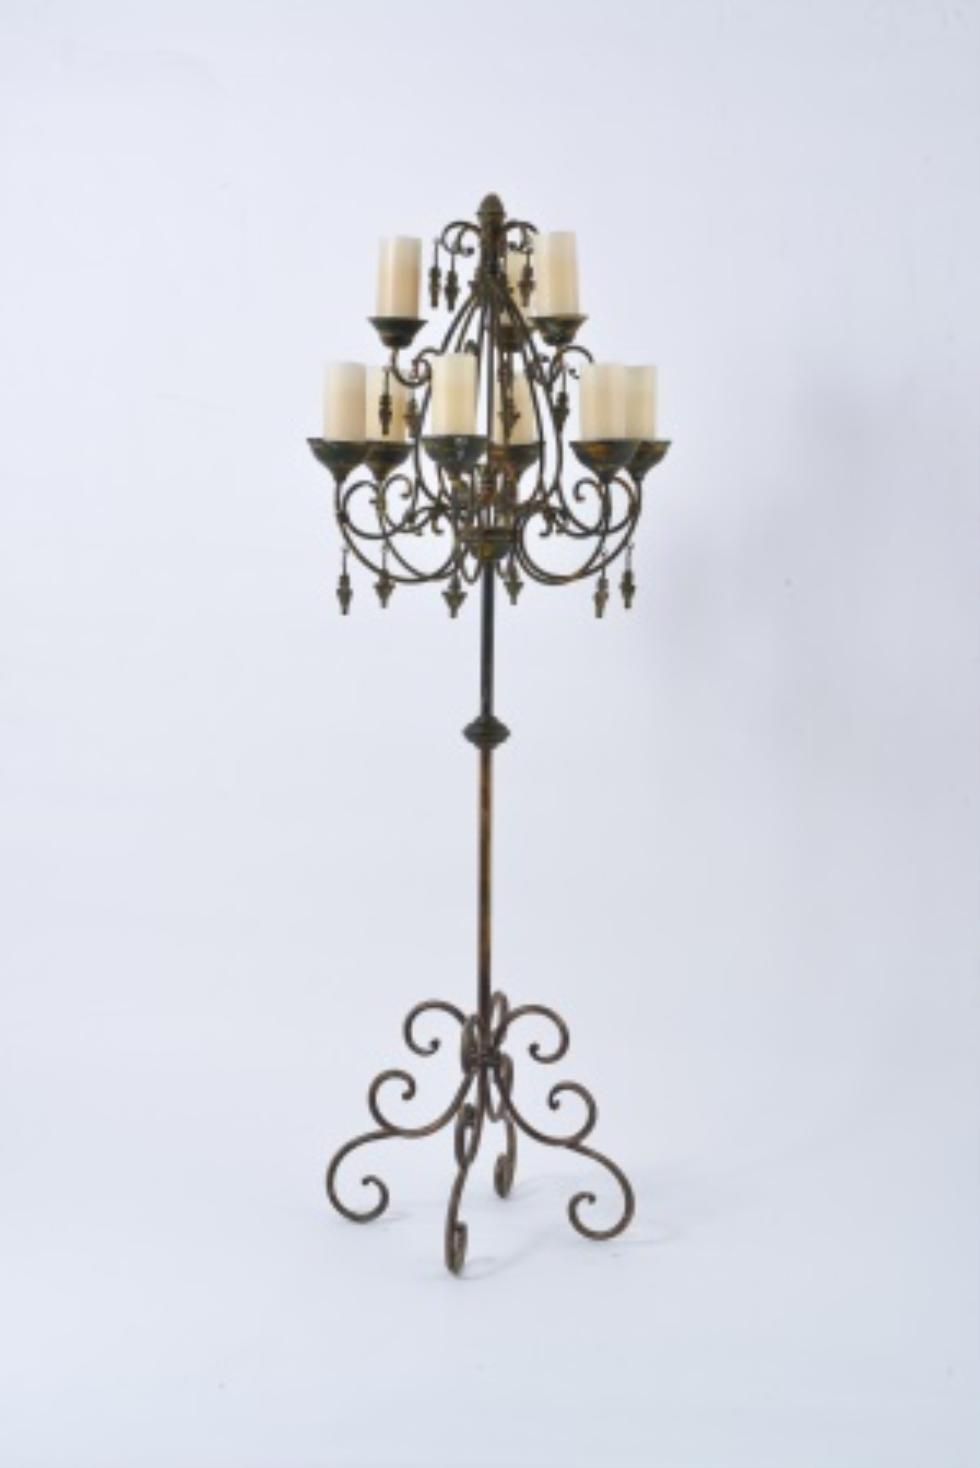 Marianne S Rentals Wrought Iron Vintage Floor Candle Rentals